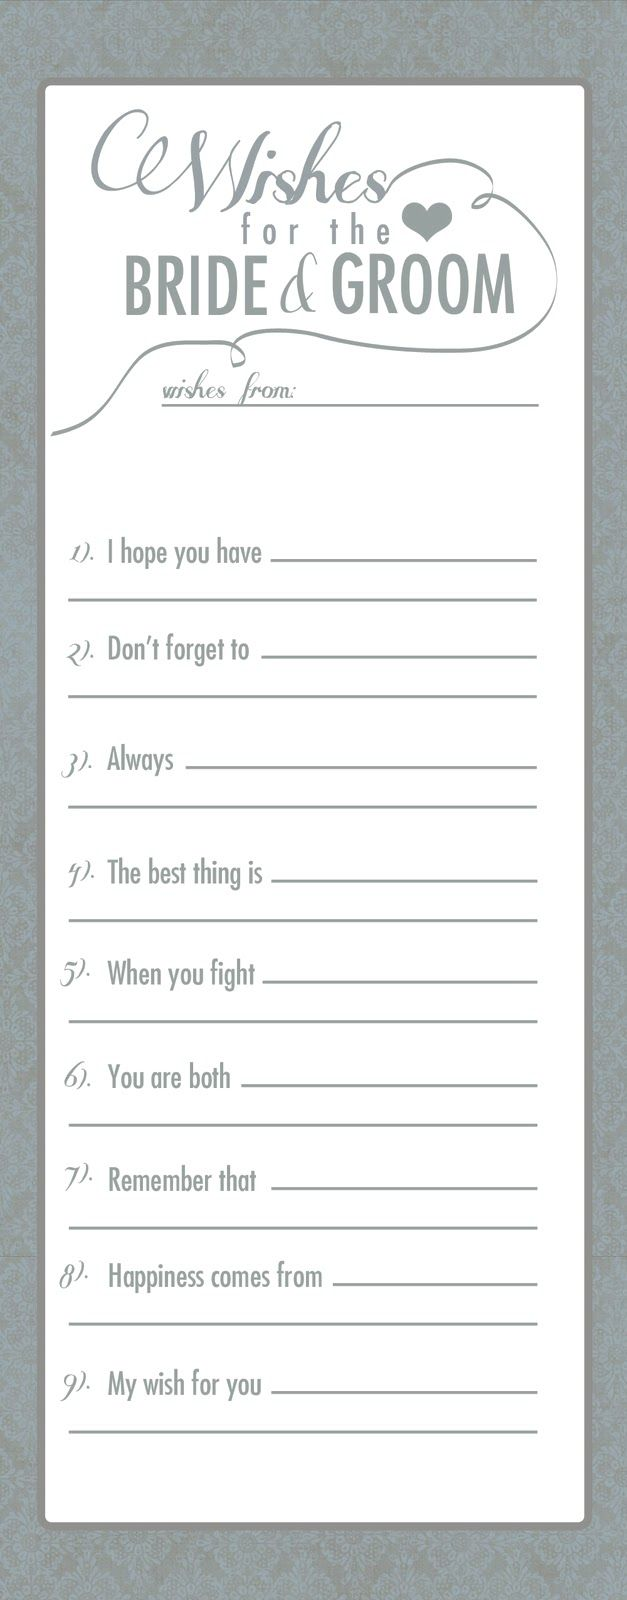 Instructions Please Fill Out An Advice Card For Amber And Joe And